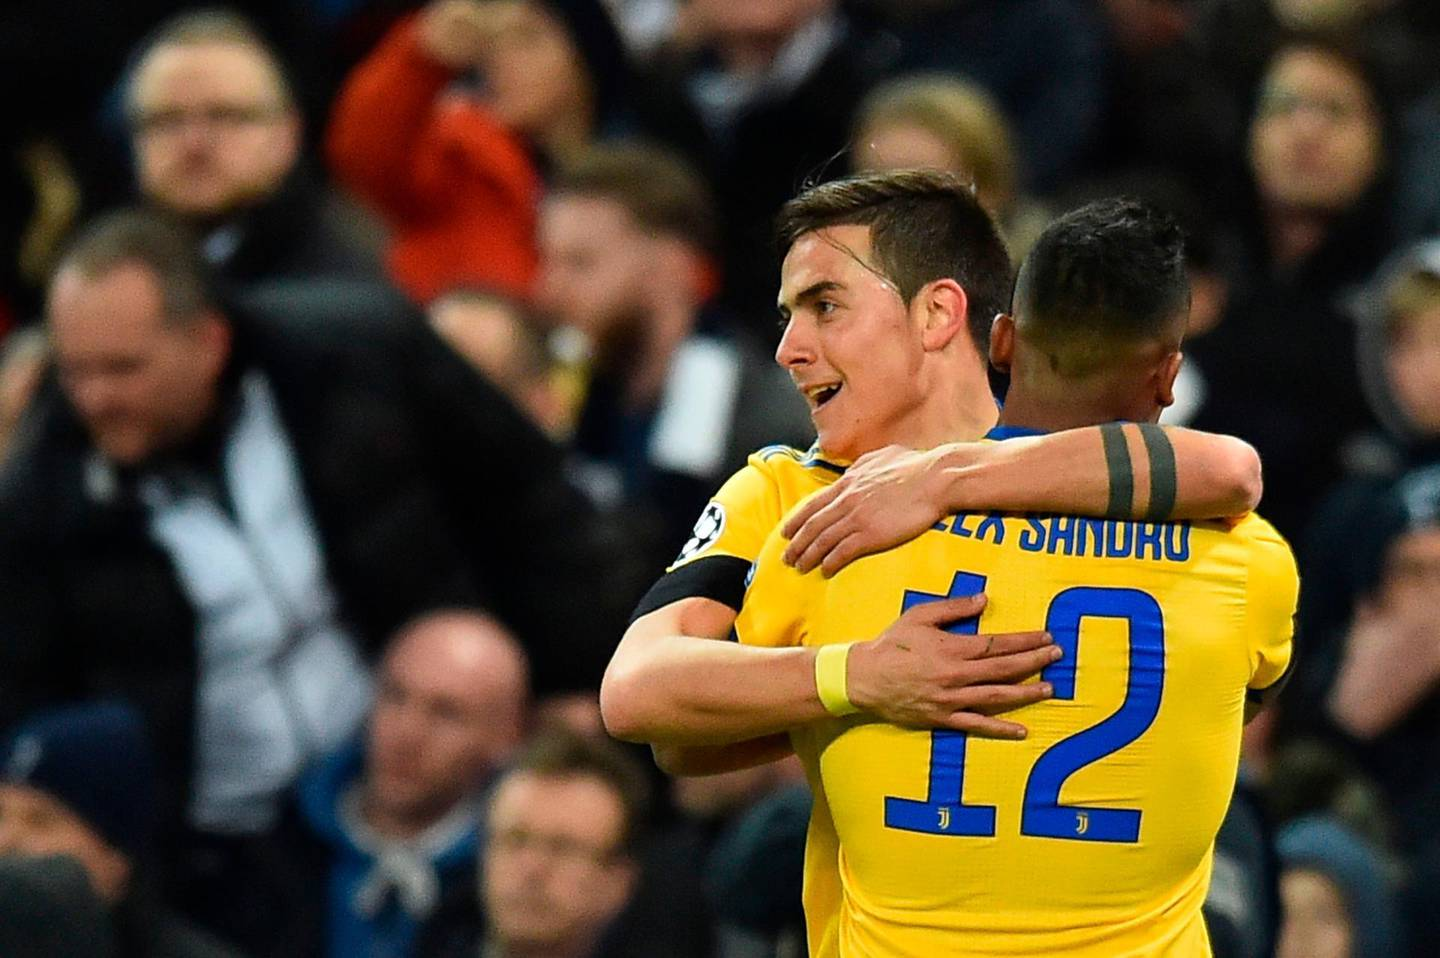 Juventus' Argentinian striker Paulo Dybala celebrates with Juventus' Brazilian defender Alex Sandro (R) after scoring their second goal during the UEFA Champions League round of sixteen second leg football match between Tottenham Hotspur and Juventus at Wembley Stadium in London, on March 7, 2018. / AFP PHOTO / Glyn KIRK